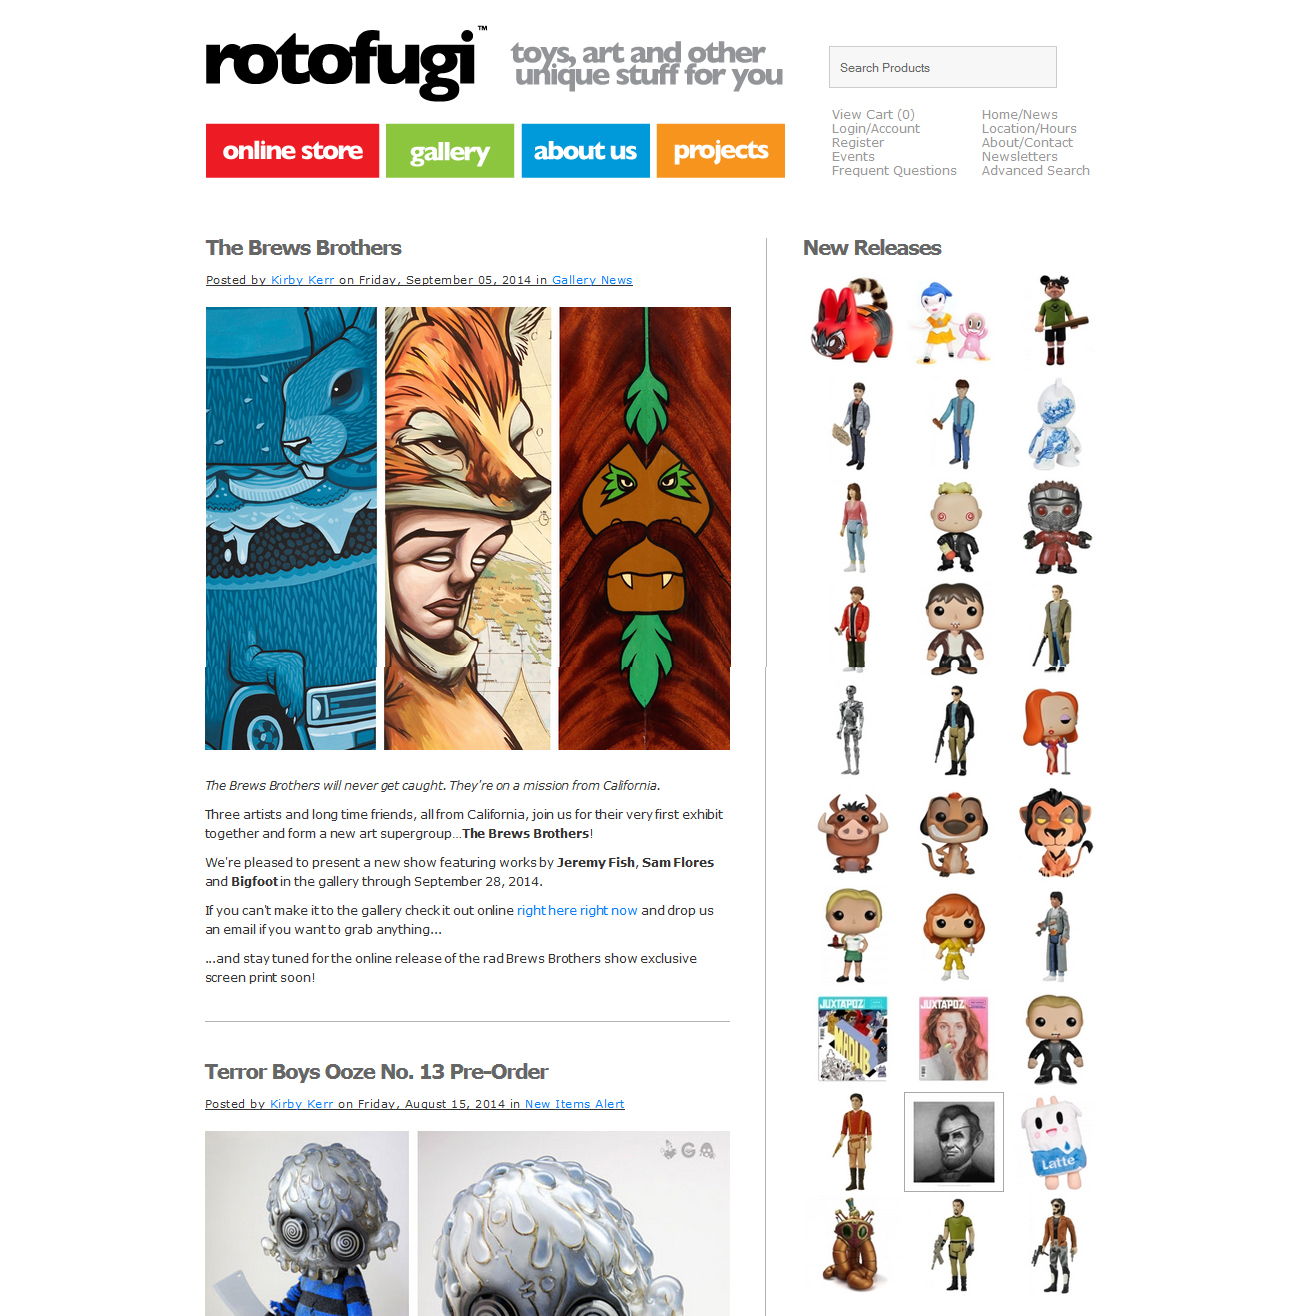 Rotofugi Featured ProductCart Site